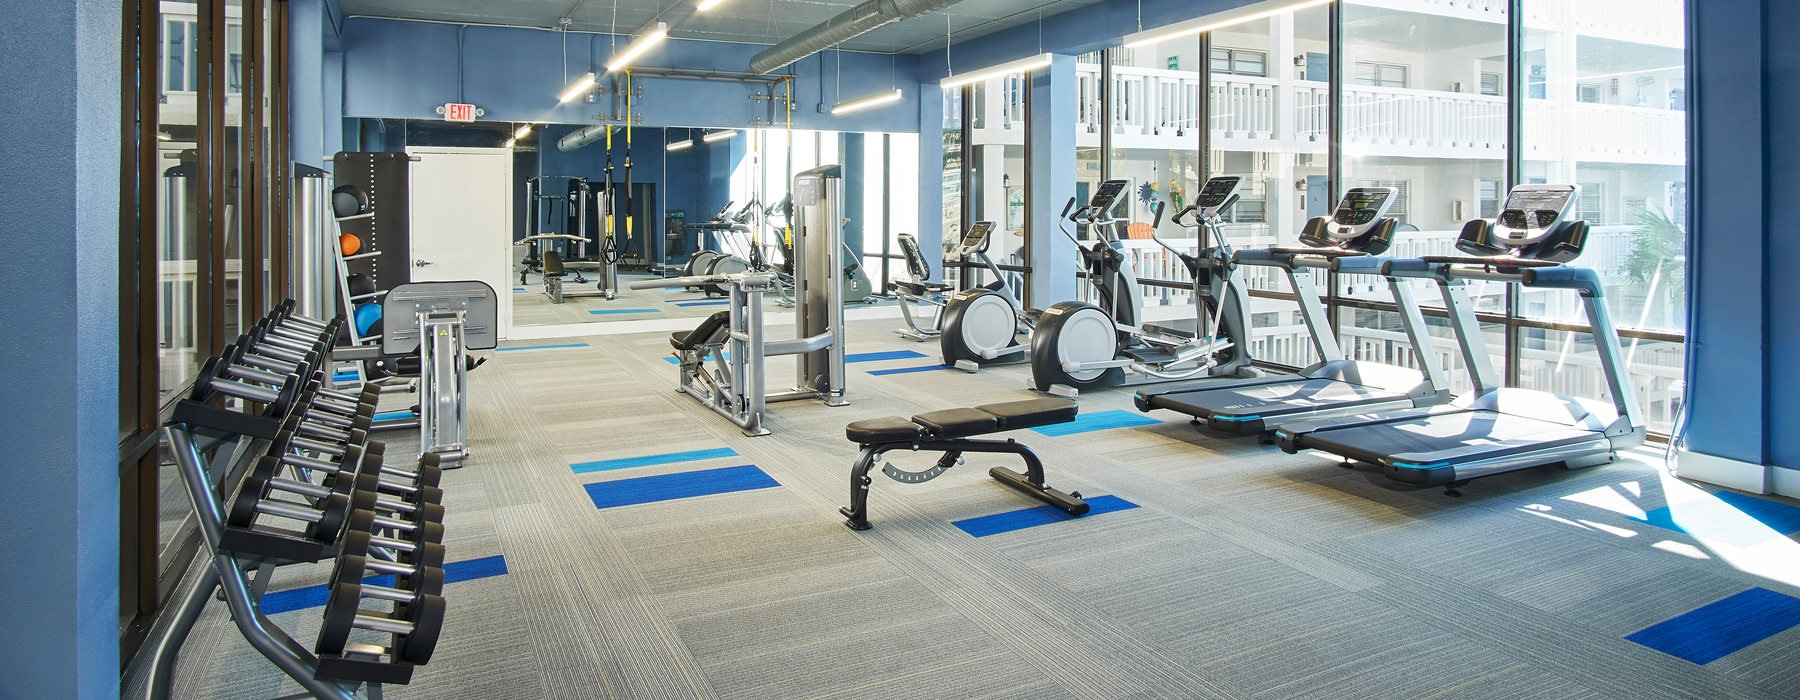 spacious, brightly lit fitness center